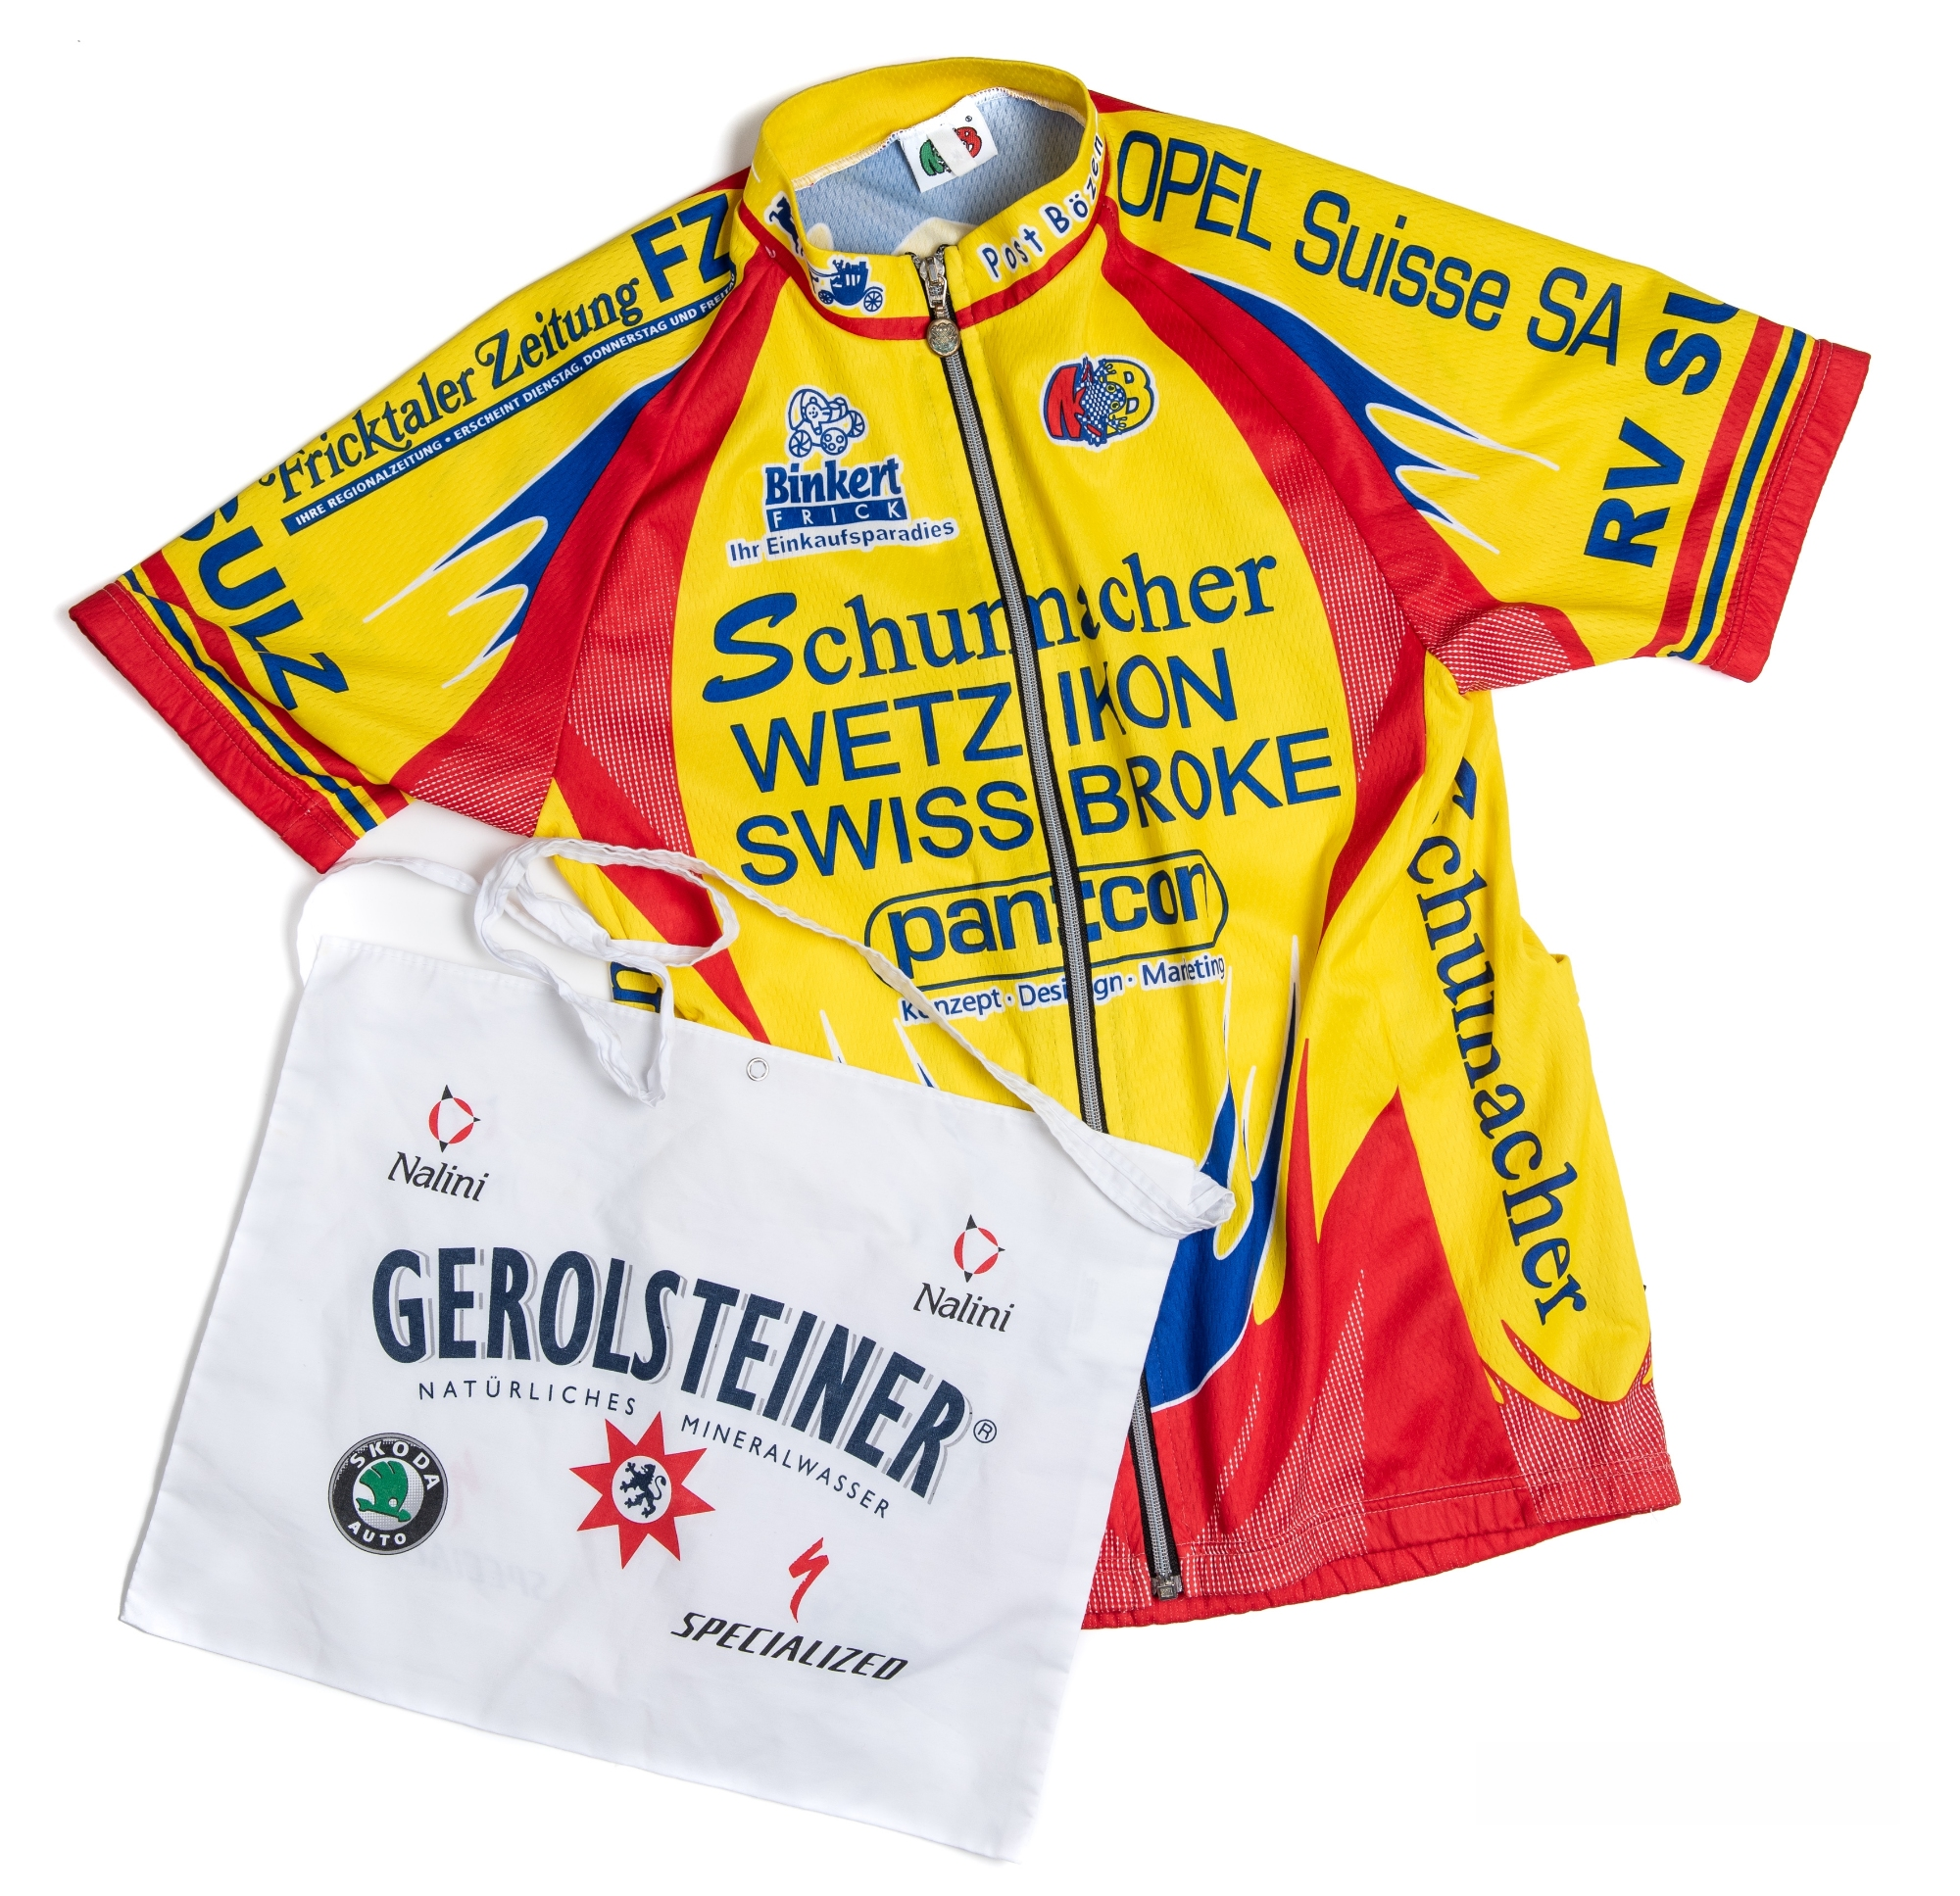 2006 yellow, red and blue WetzIkon SwissBroke Cycling race jersey in the style worn by Stefan - Image 3 of 4